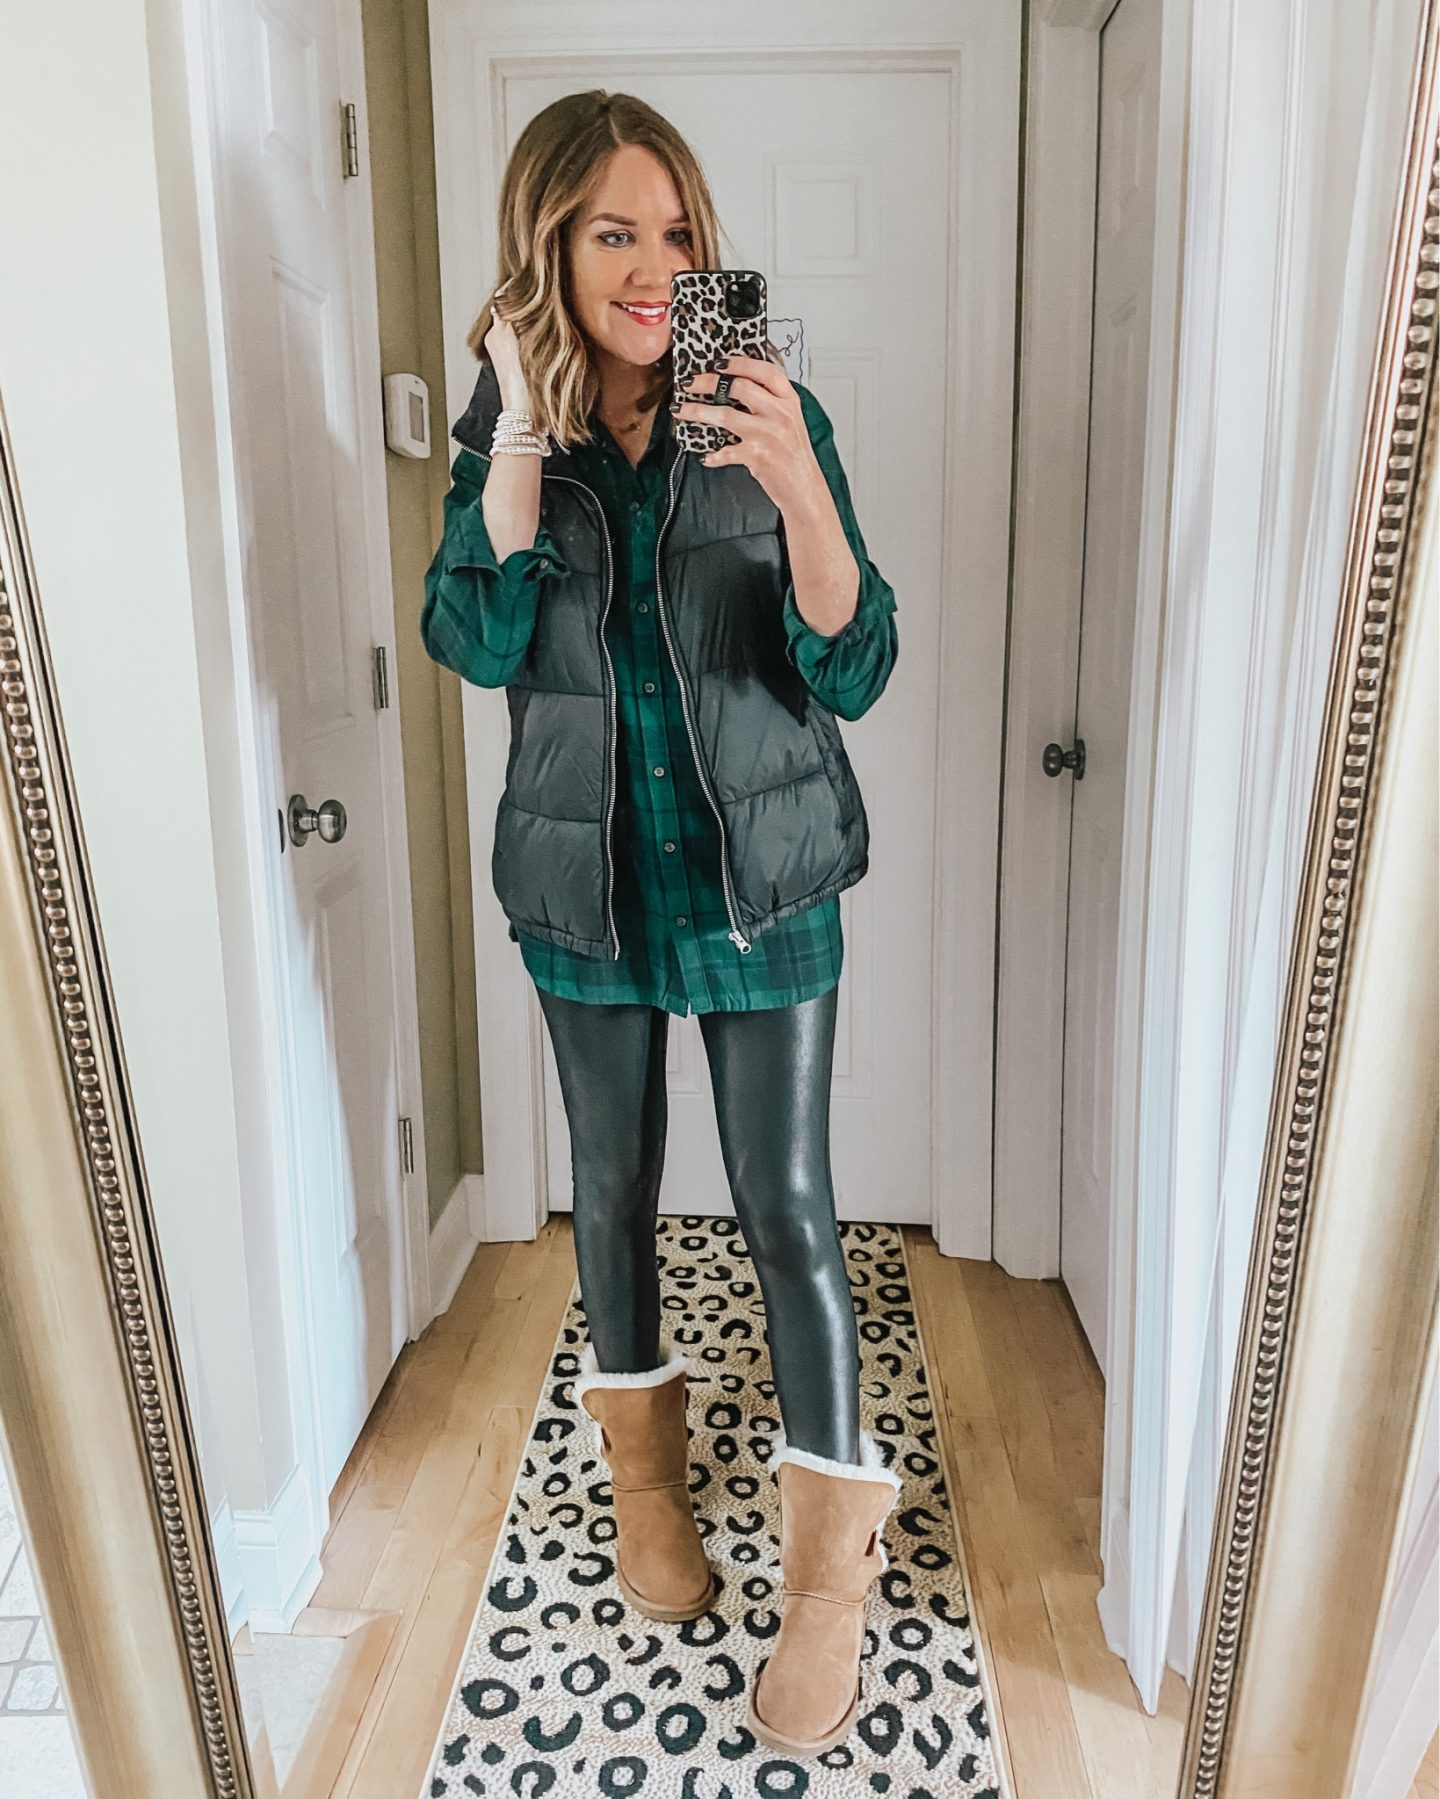 styling-leggings-for-winter-Ugg-boots-outfit